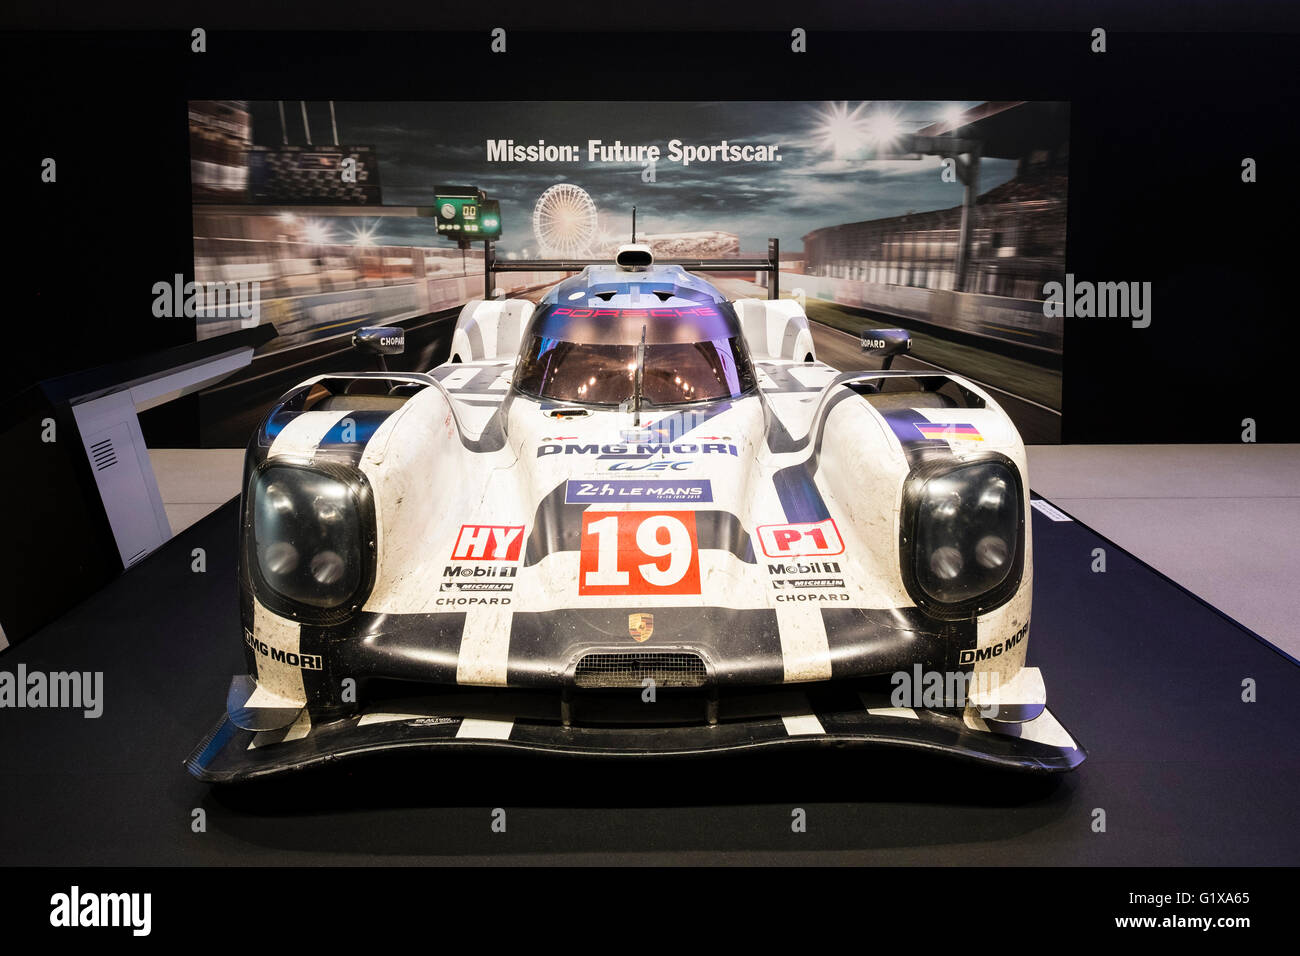 Porsche Le Mans racing car on display at VW Drive forum on Unter den Linden in Berlin Germany - Stock Image